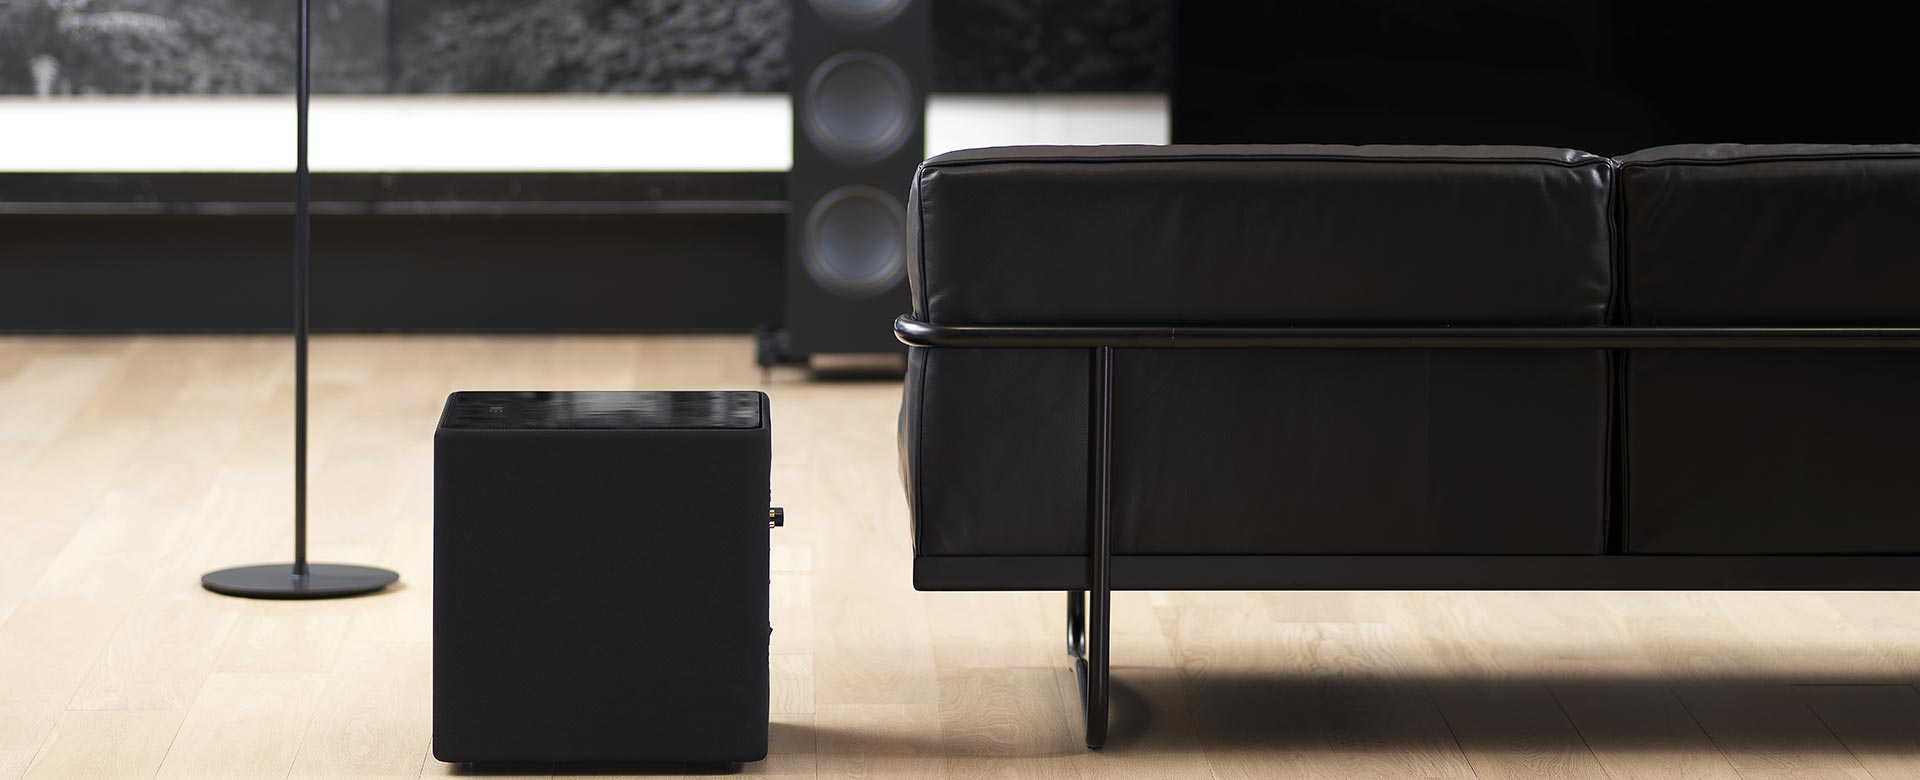 KEF KUBE Subwoofers provide deep rich bass and are the best home theater subwoofers.